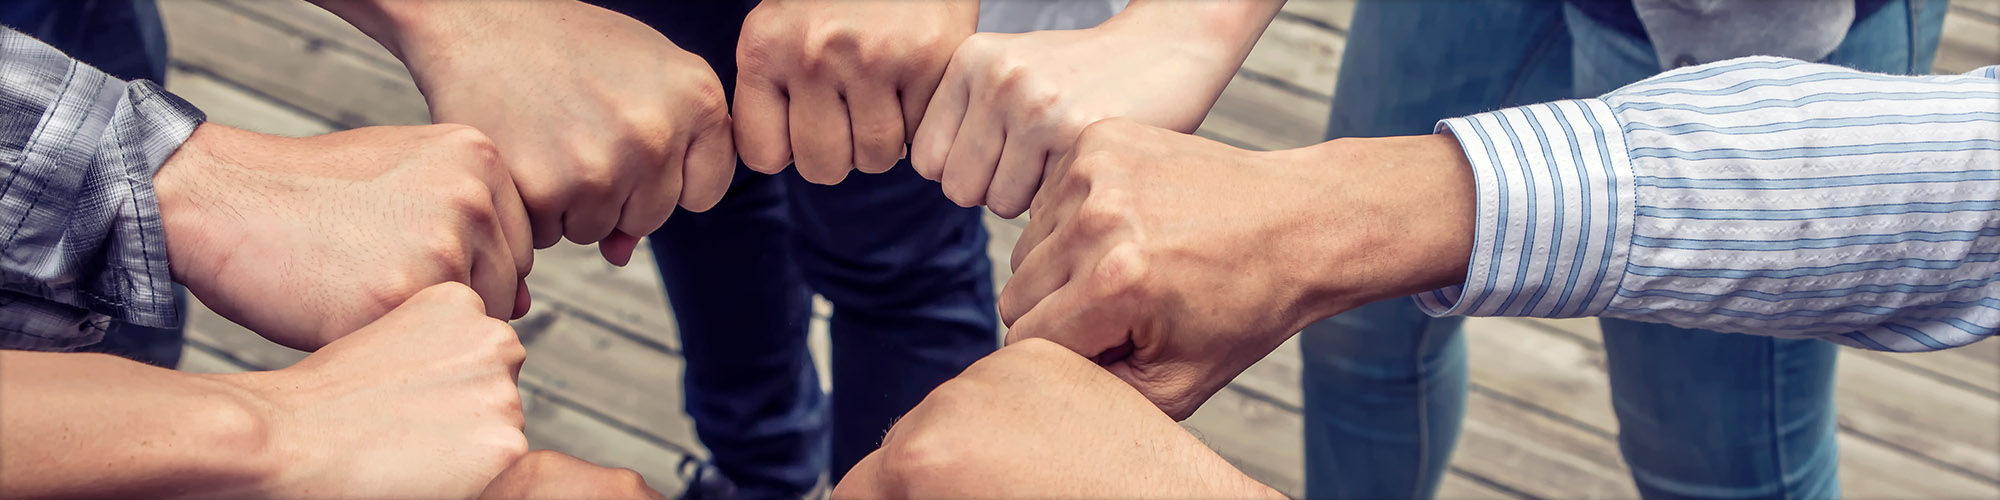 People Putting Their Hands Together In Cooperation